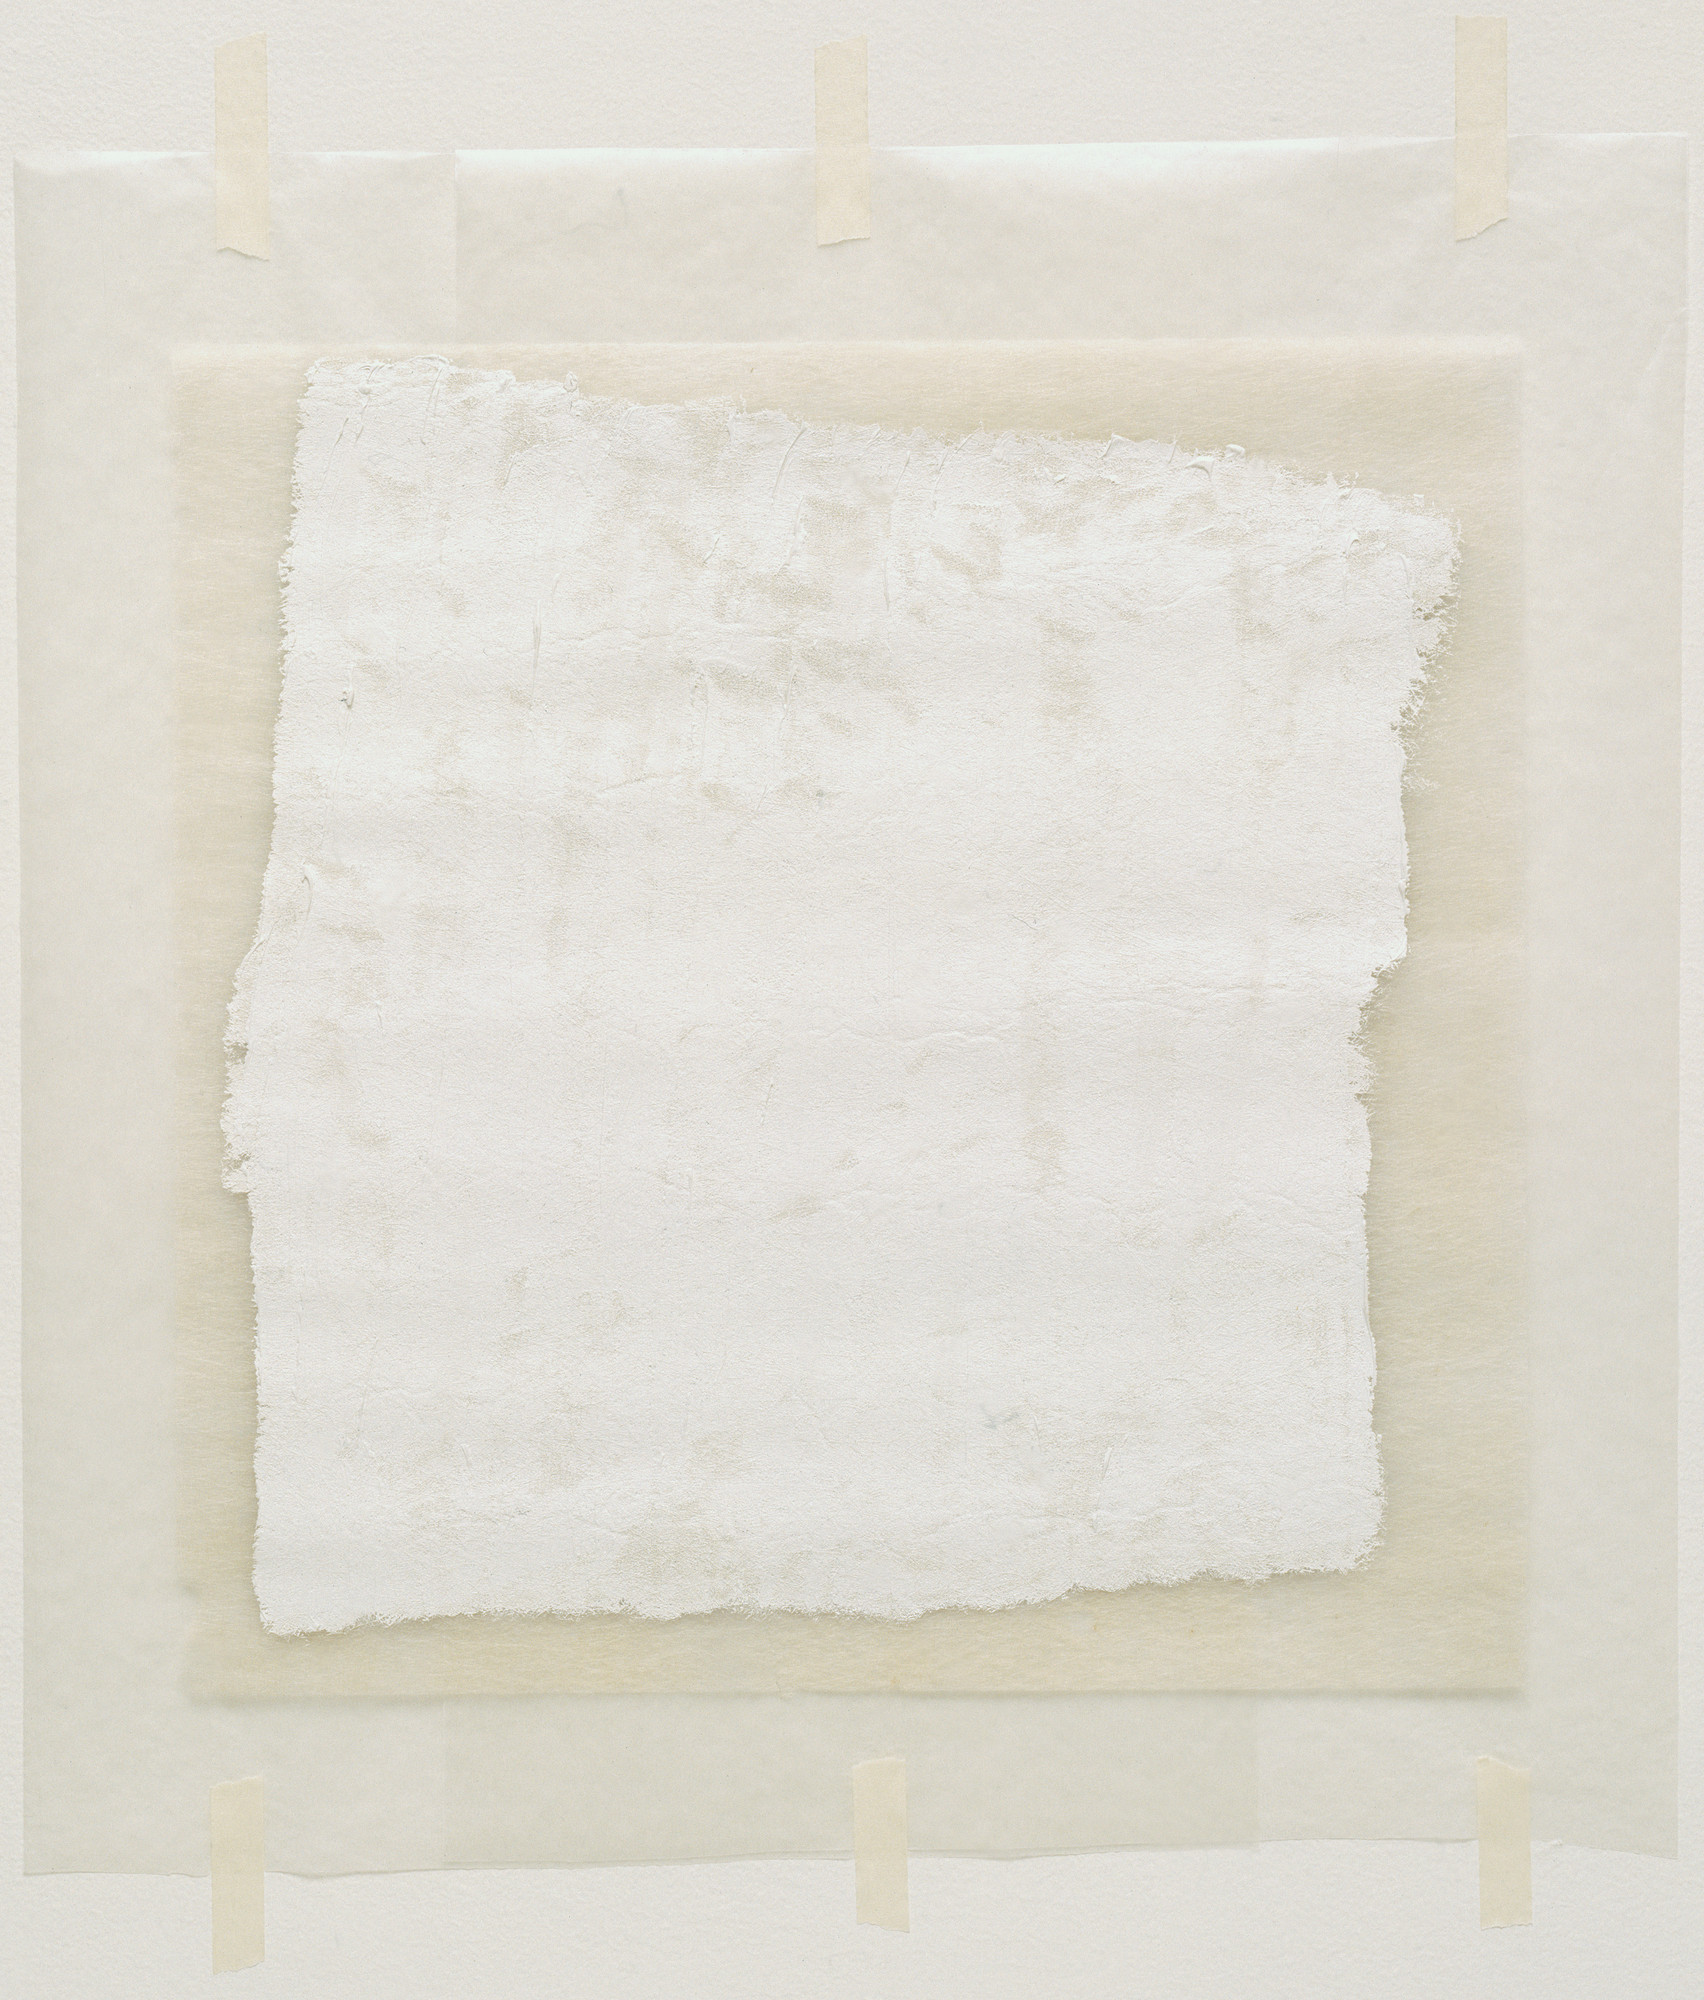 Robert Ryman. Surface Veil. 1970. Oil on fiberglass with waxed paper frame and masking tape, fiberglass sheet 13 × 13″ (33 × 33 cm) overall sheet 18 1⁄2 × 15″ (47 × 38 cm). Gift of the Denise and Andrew Saul Fund and the Scaler Foundation. © 2016 Robert Ryman